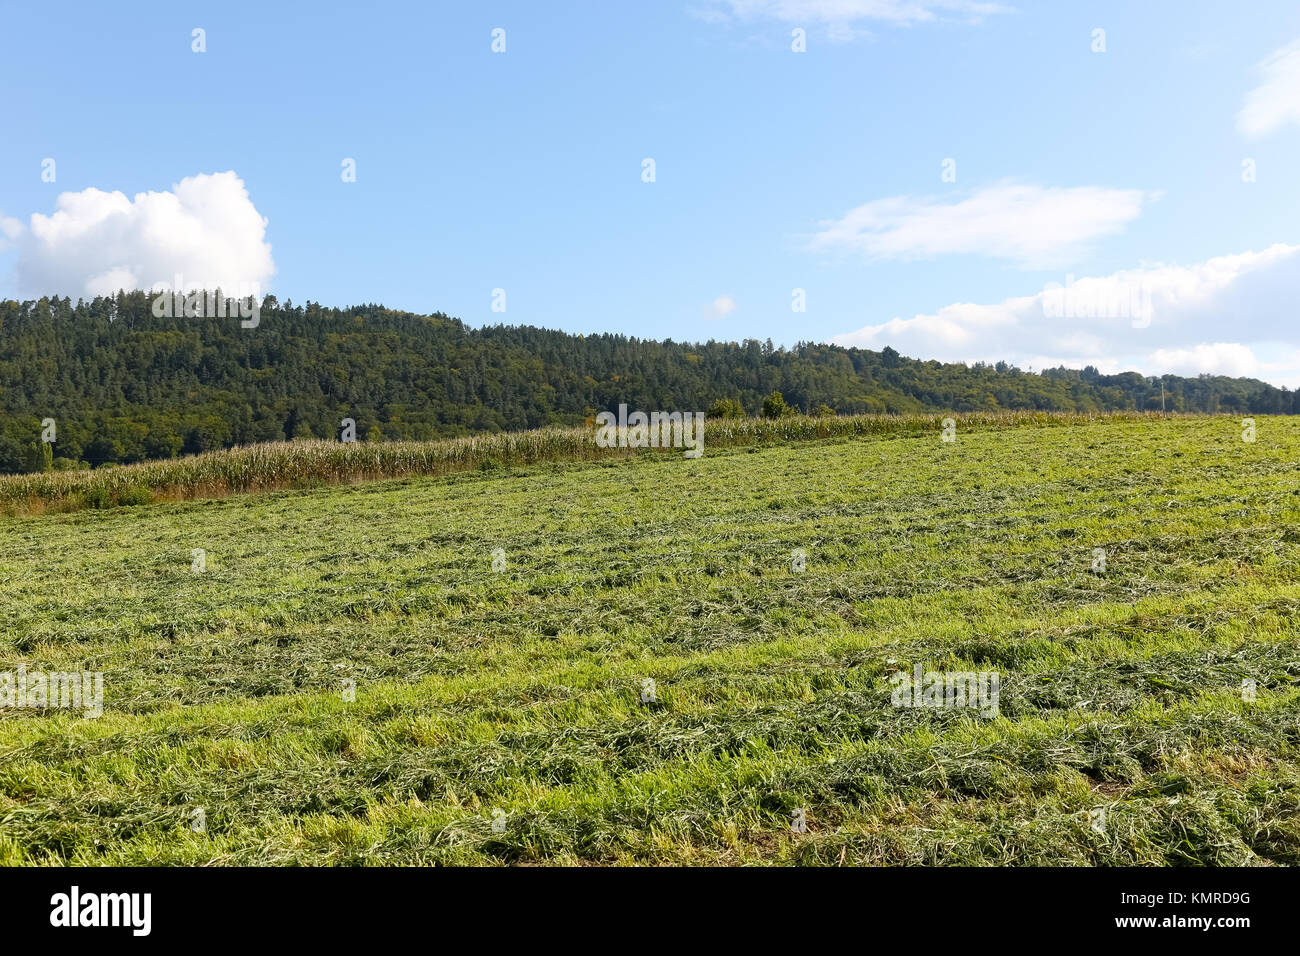 Agricultural area. The green field where the grass mown is seen and in the distance there are forest areas. Stock Photo